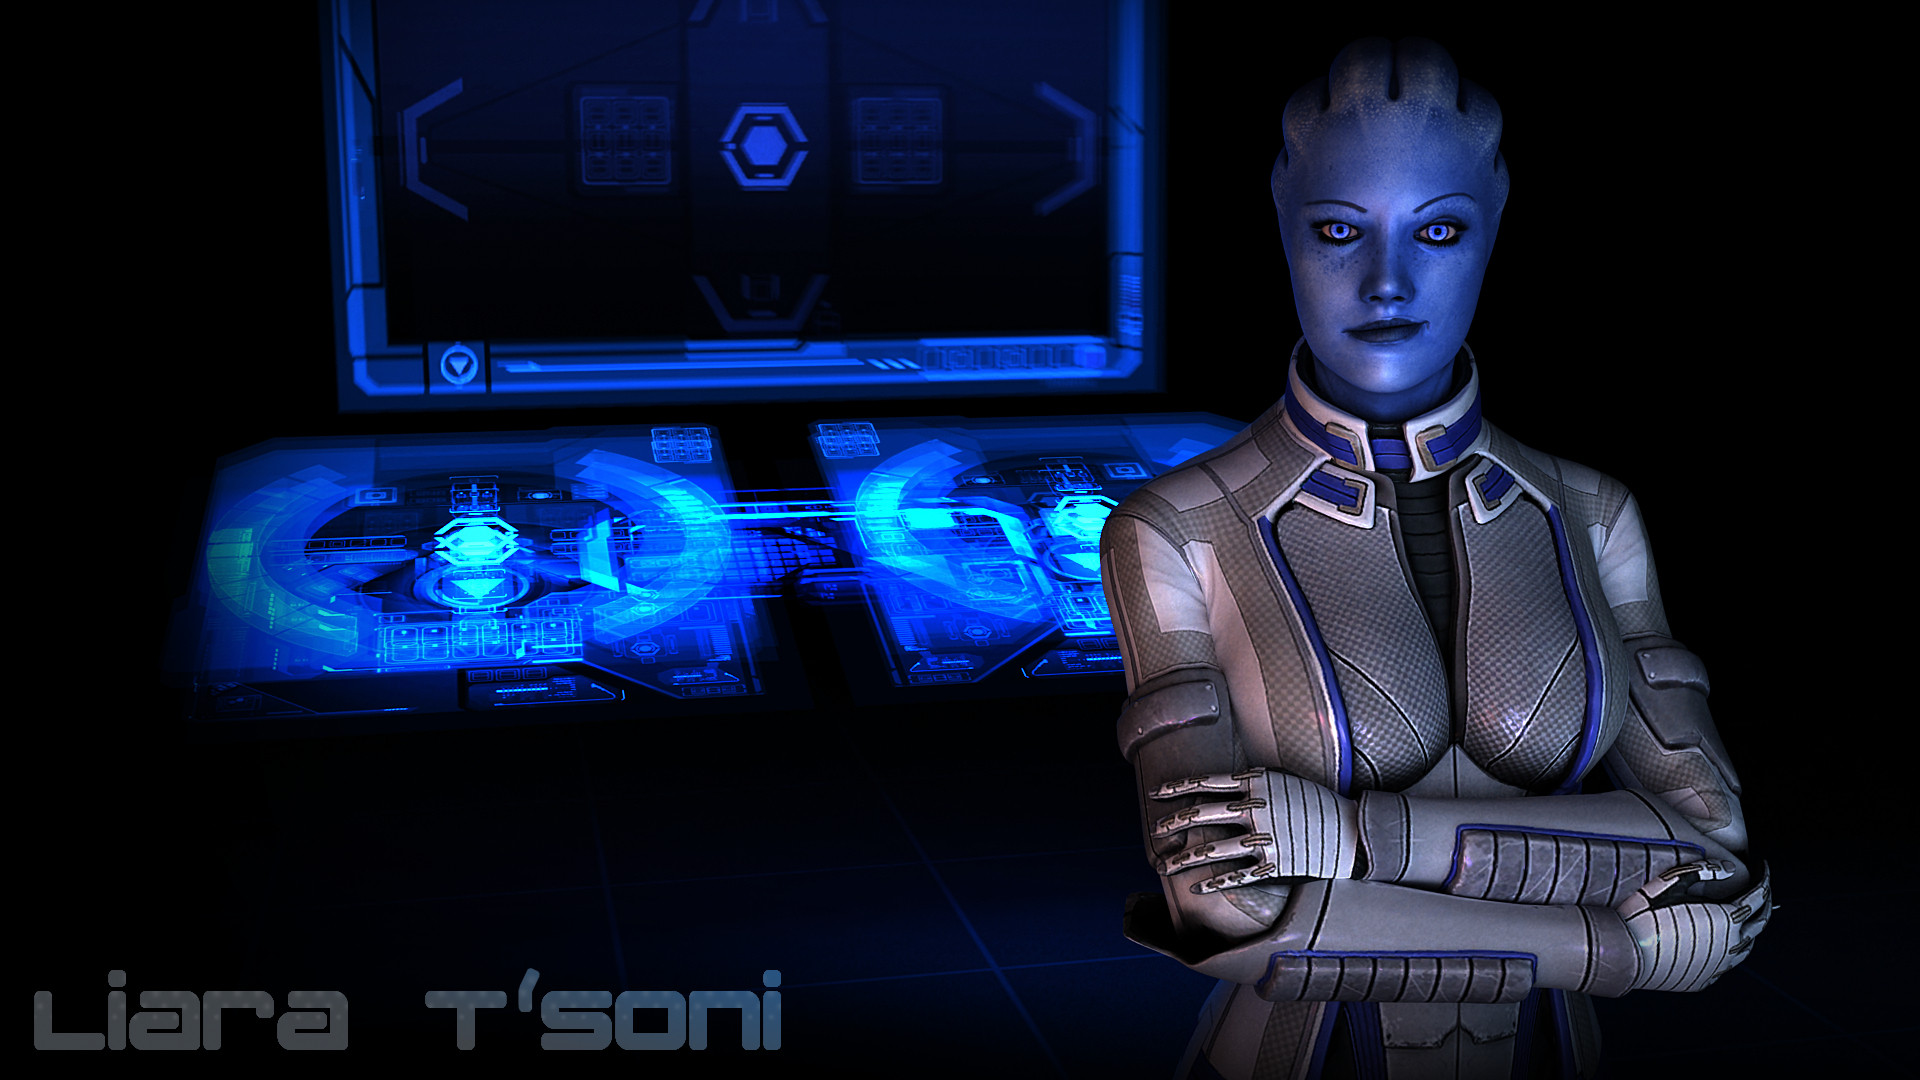 mass effect liara tsoni HD Wallpaper